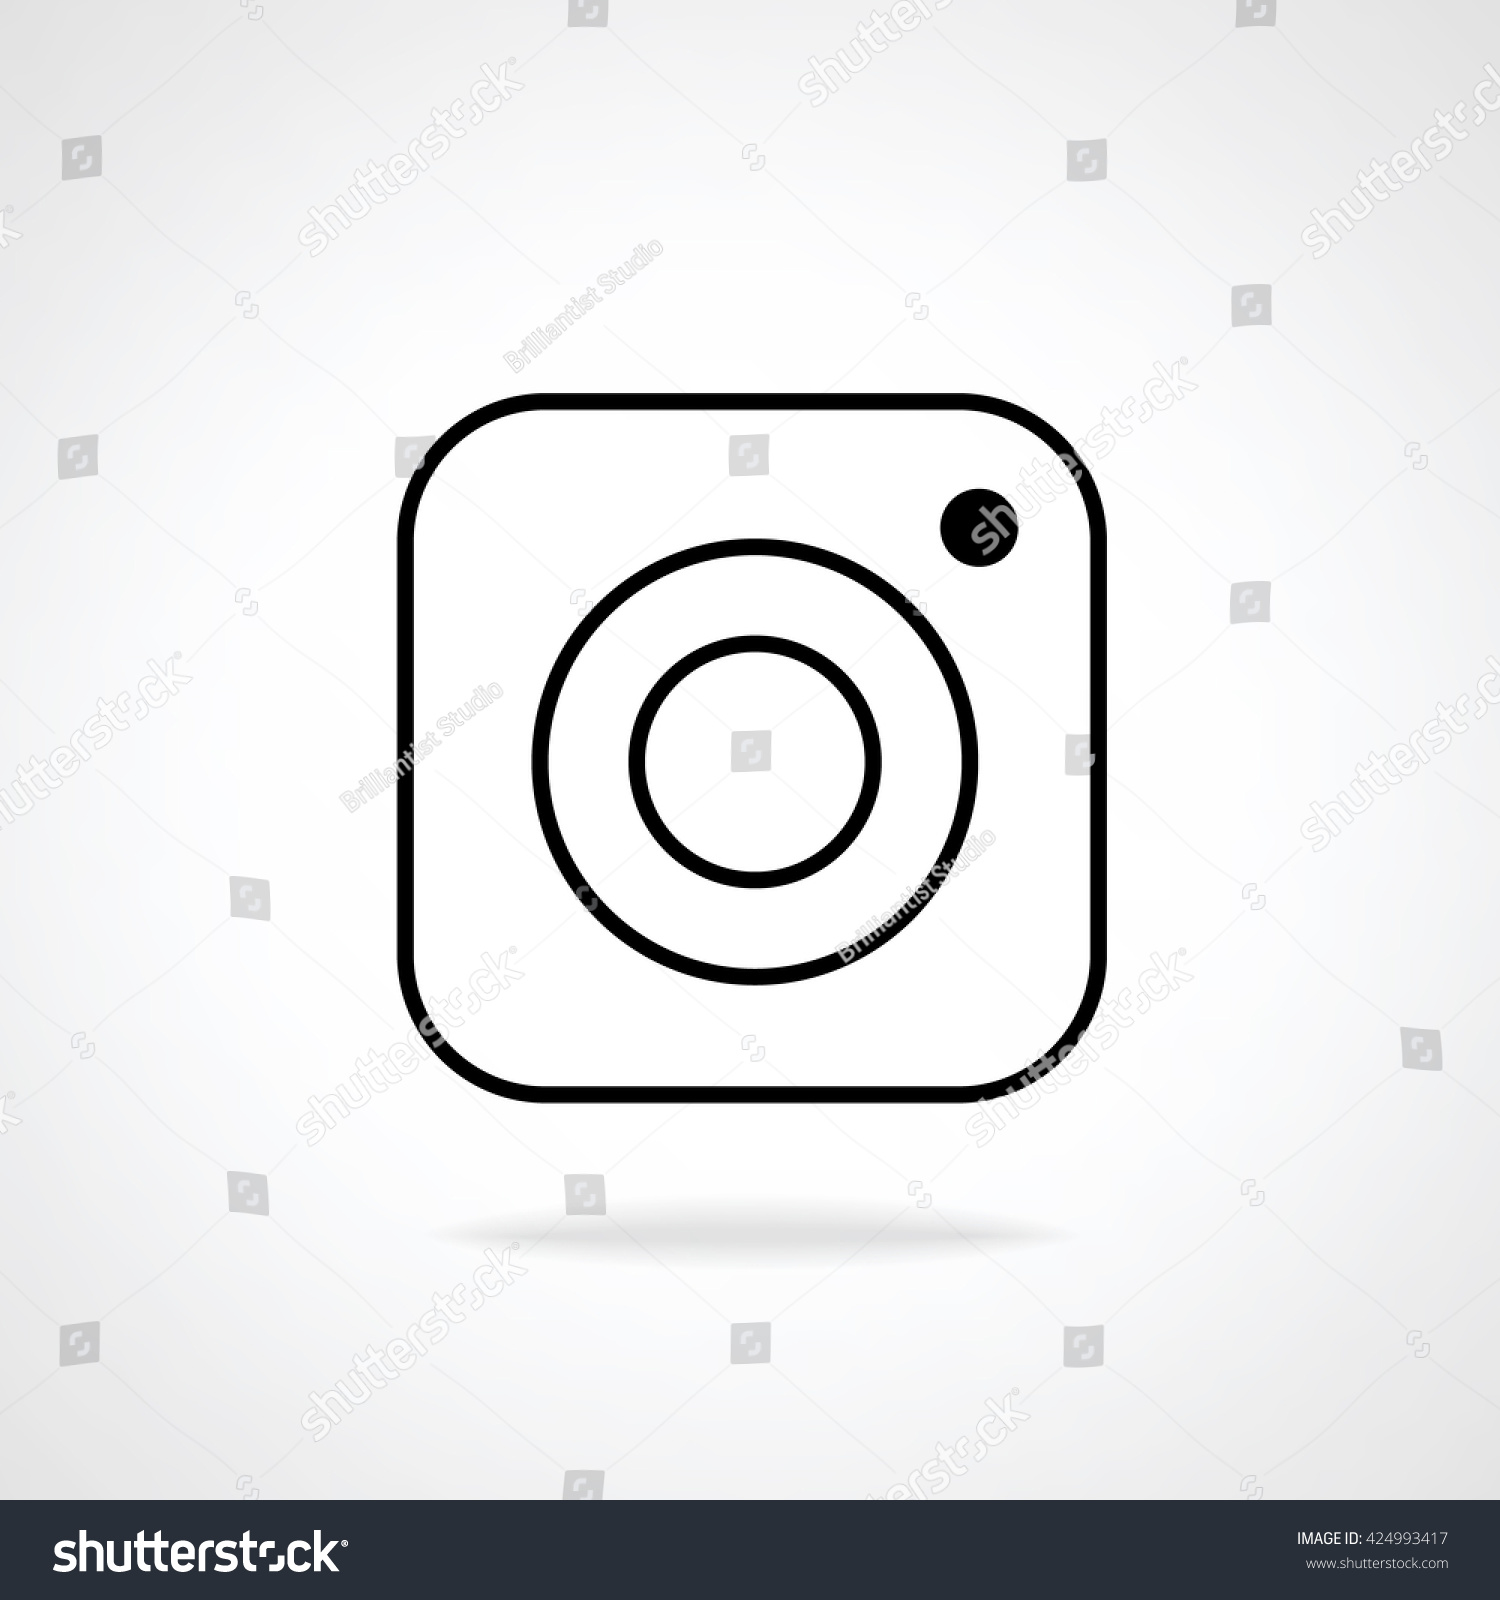 Line Drawing Instagram : Hipster photo camera line icon on background inspired by